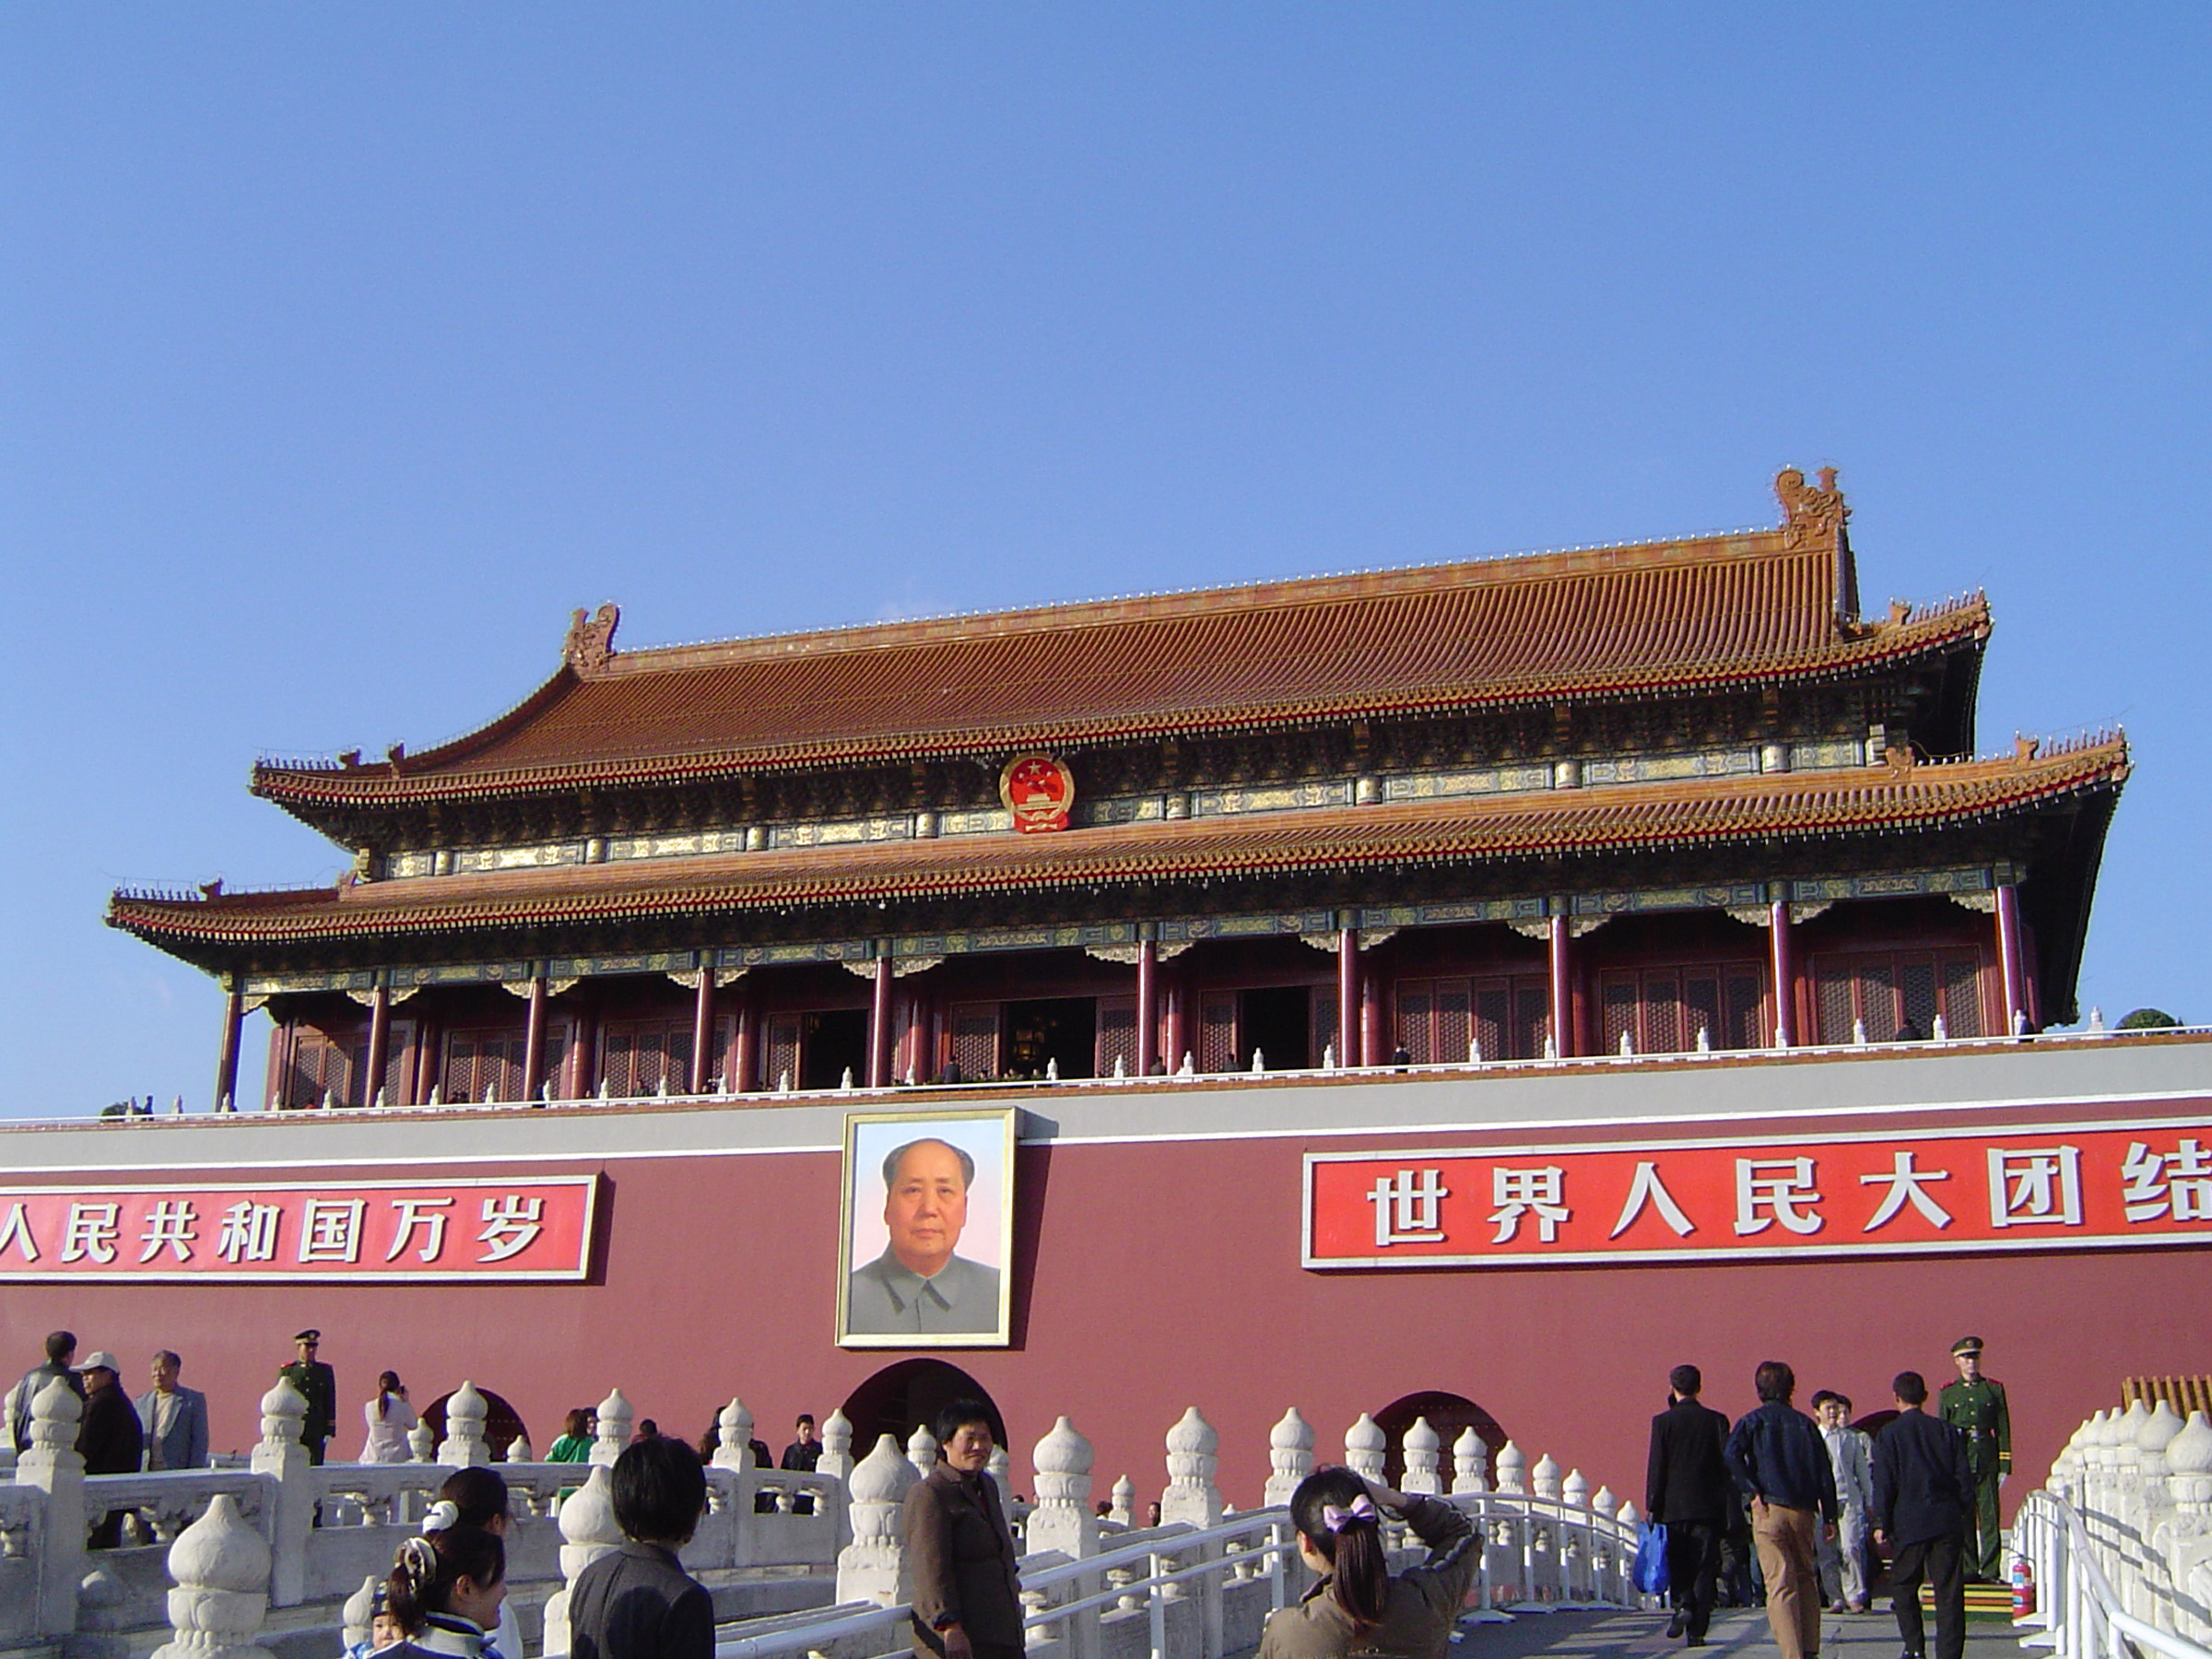 Famous Forbidden City Building with Random Visitors in China. Captured on Morning Time with Light Blue Sky Background.